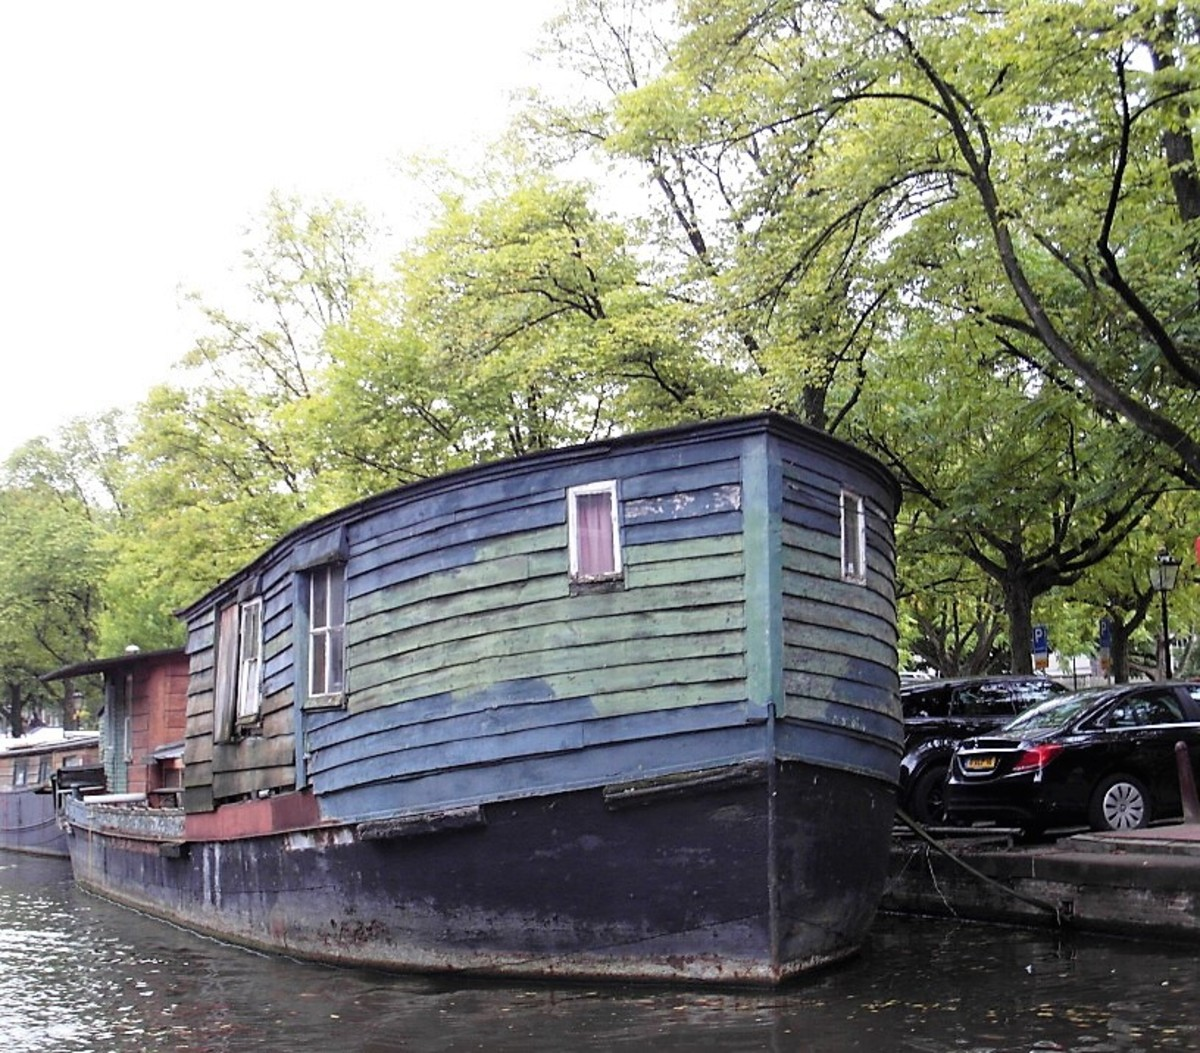 Houseboat in Amsterdam.